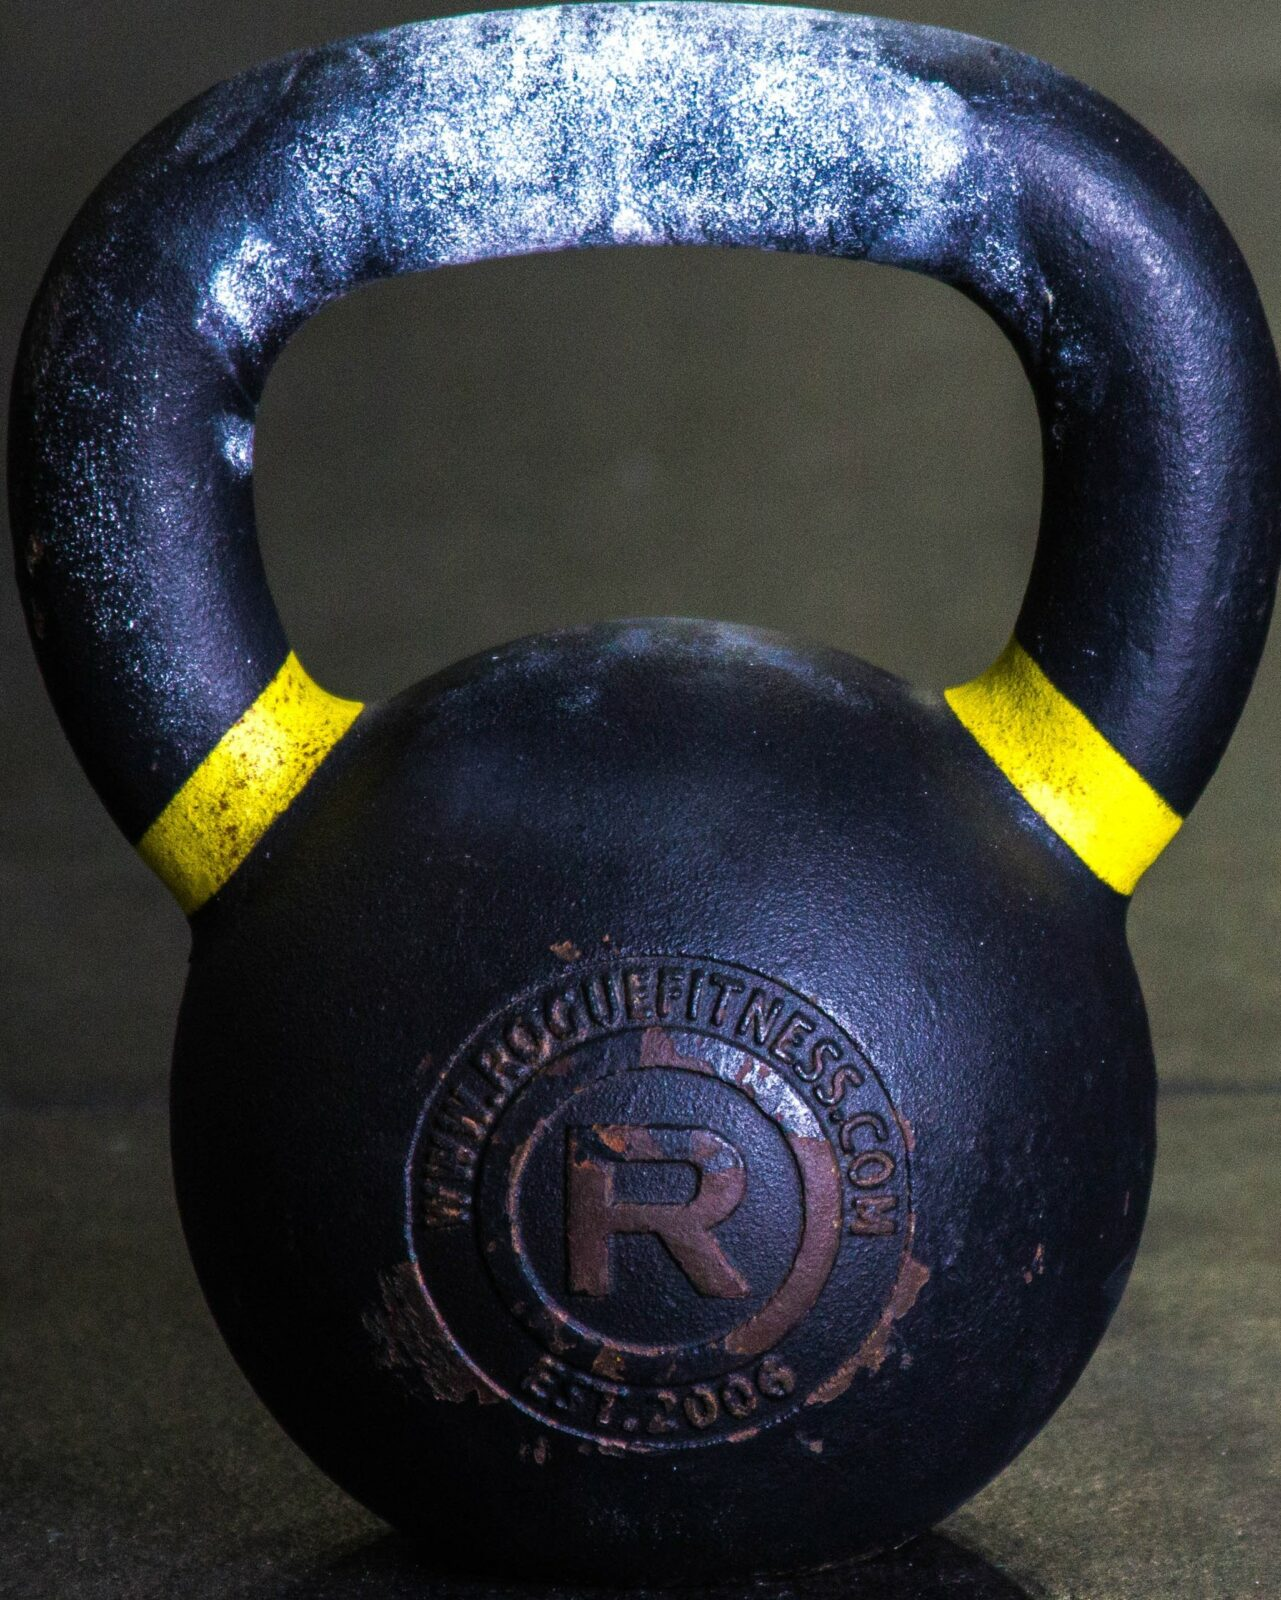 Kettlebell Weight Chart: Getting Started With Kettlebells